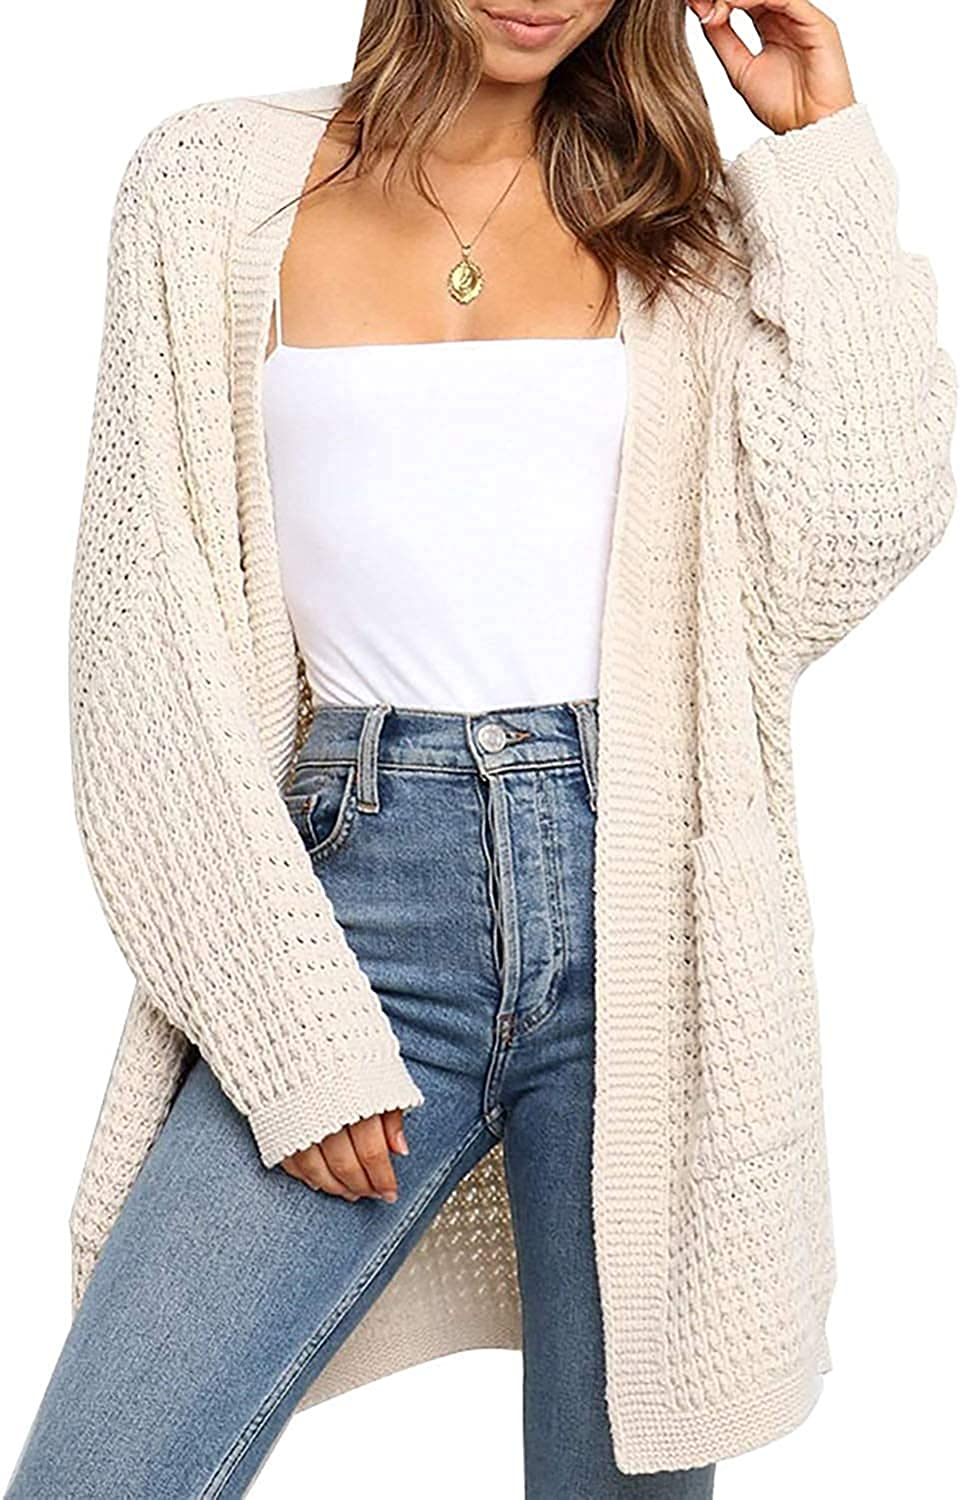 Women's long cardigan sweater casual and comfortable oversized cardigan knitted sweater with pockets